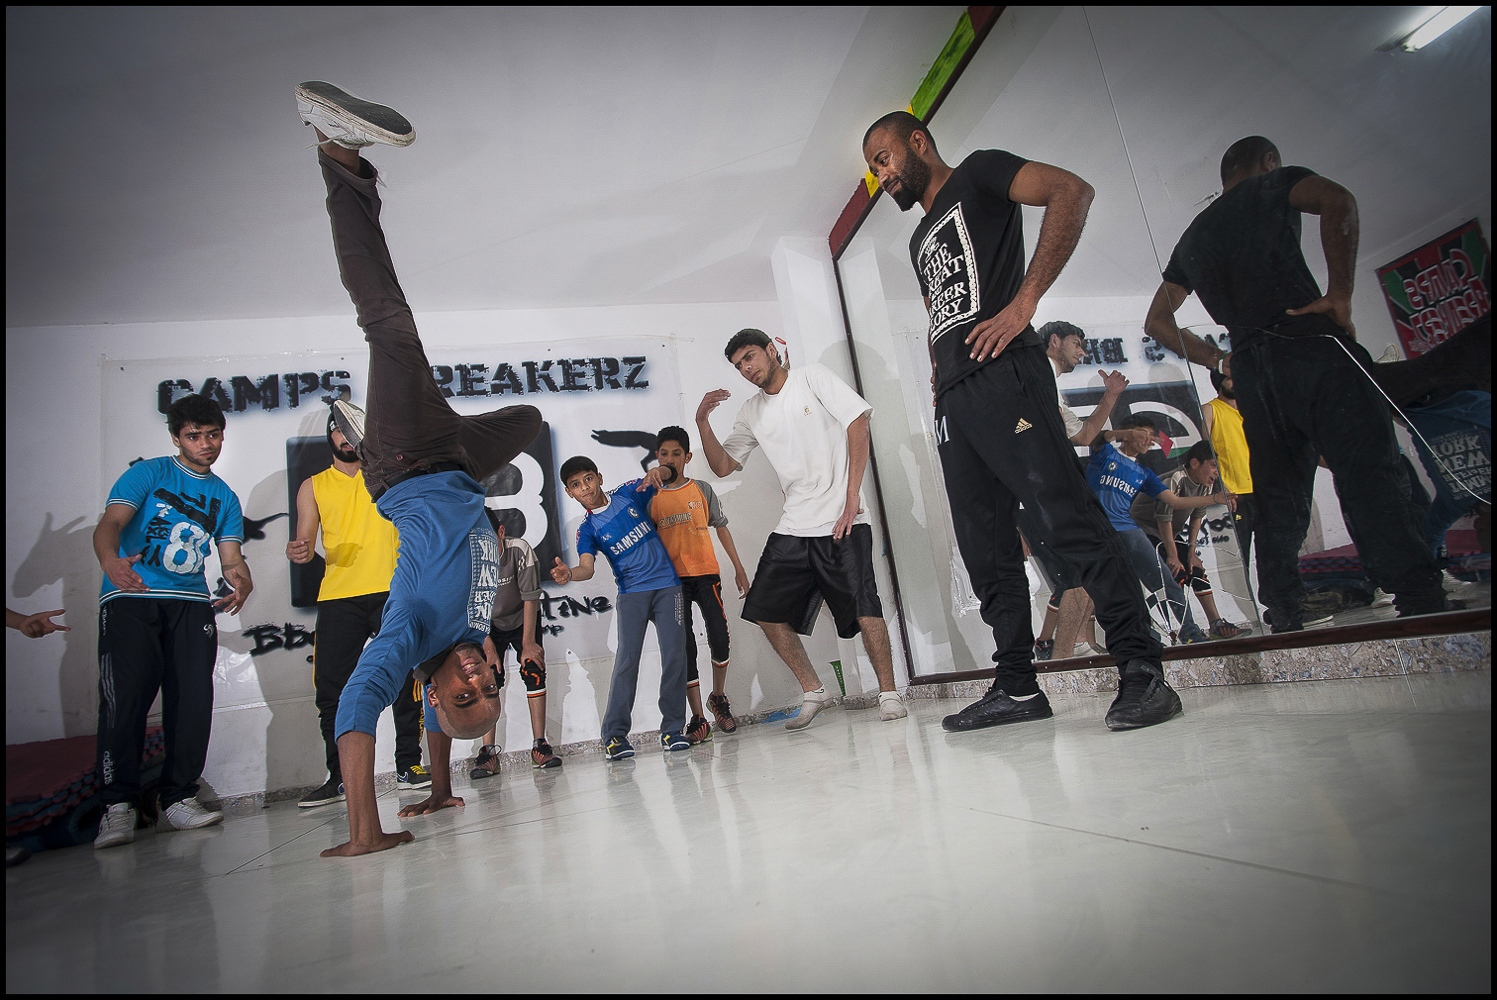 Training at Camp Breakerz  dance center in Nuseirat Camp, Gaza Strip.